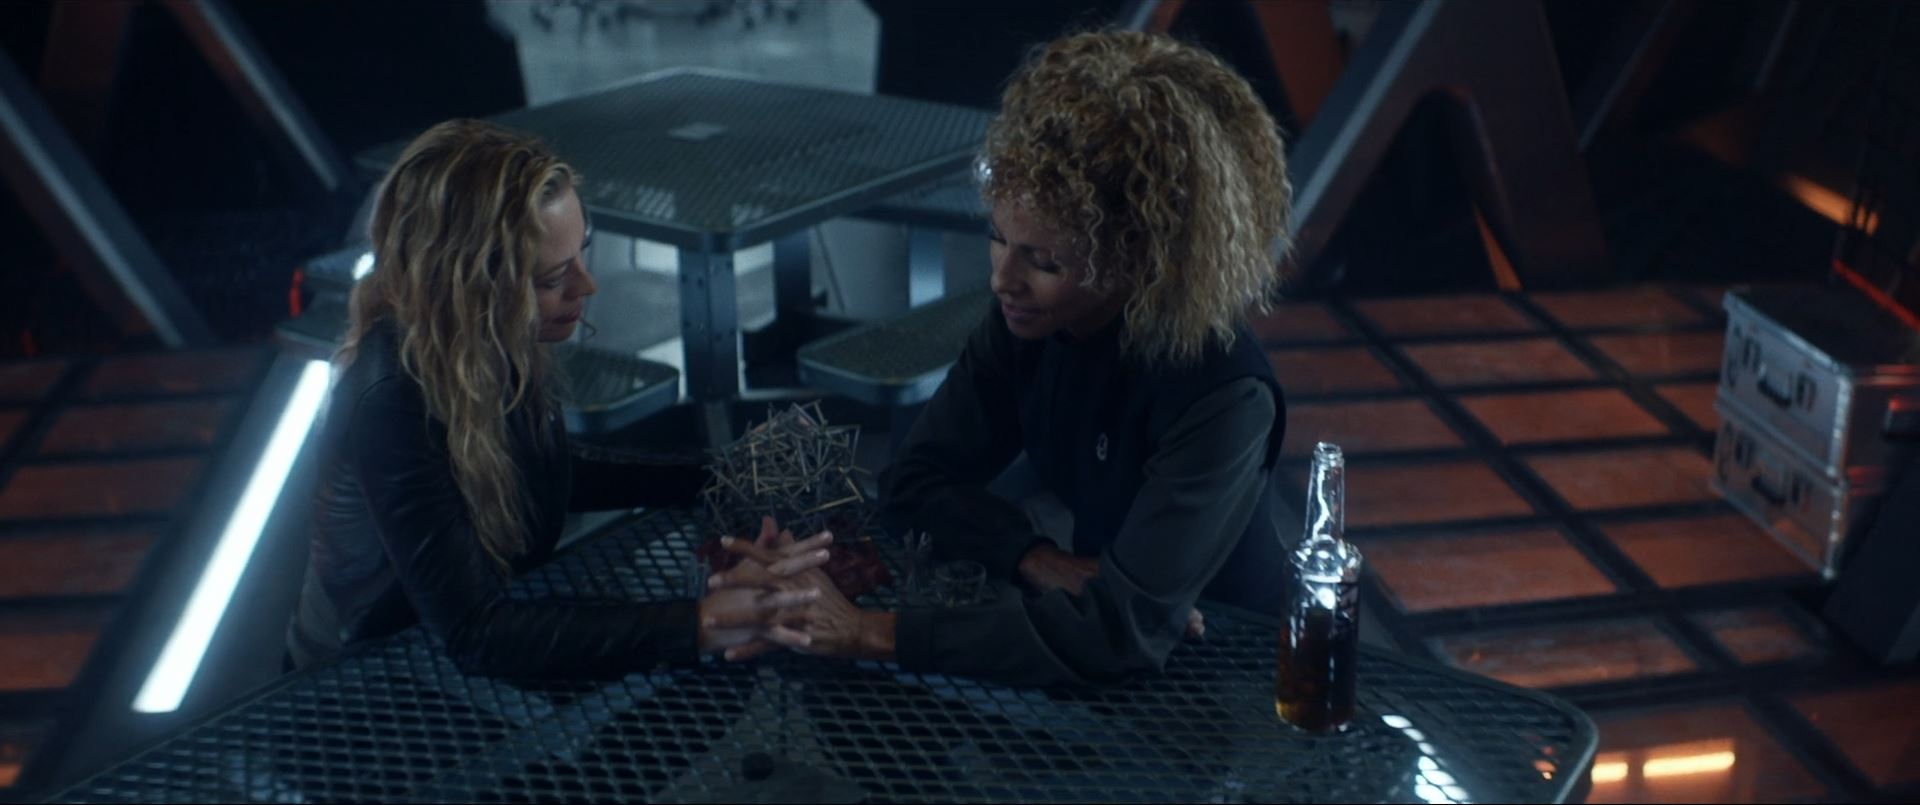 Star Trek Picard S01E10 Et in Arcadia Ego Part 2 Review - Seven and Rafi holding hands